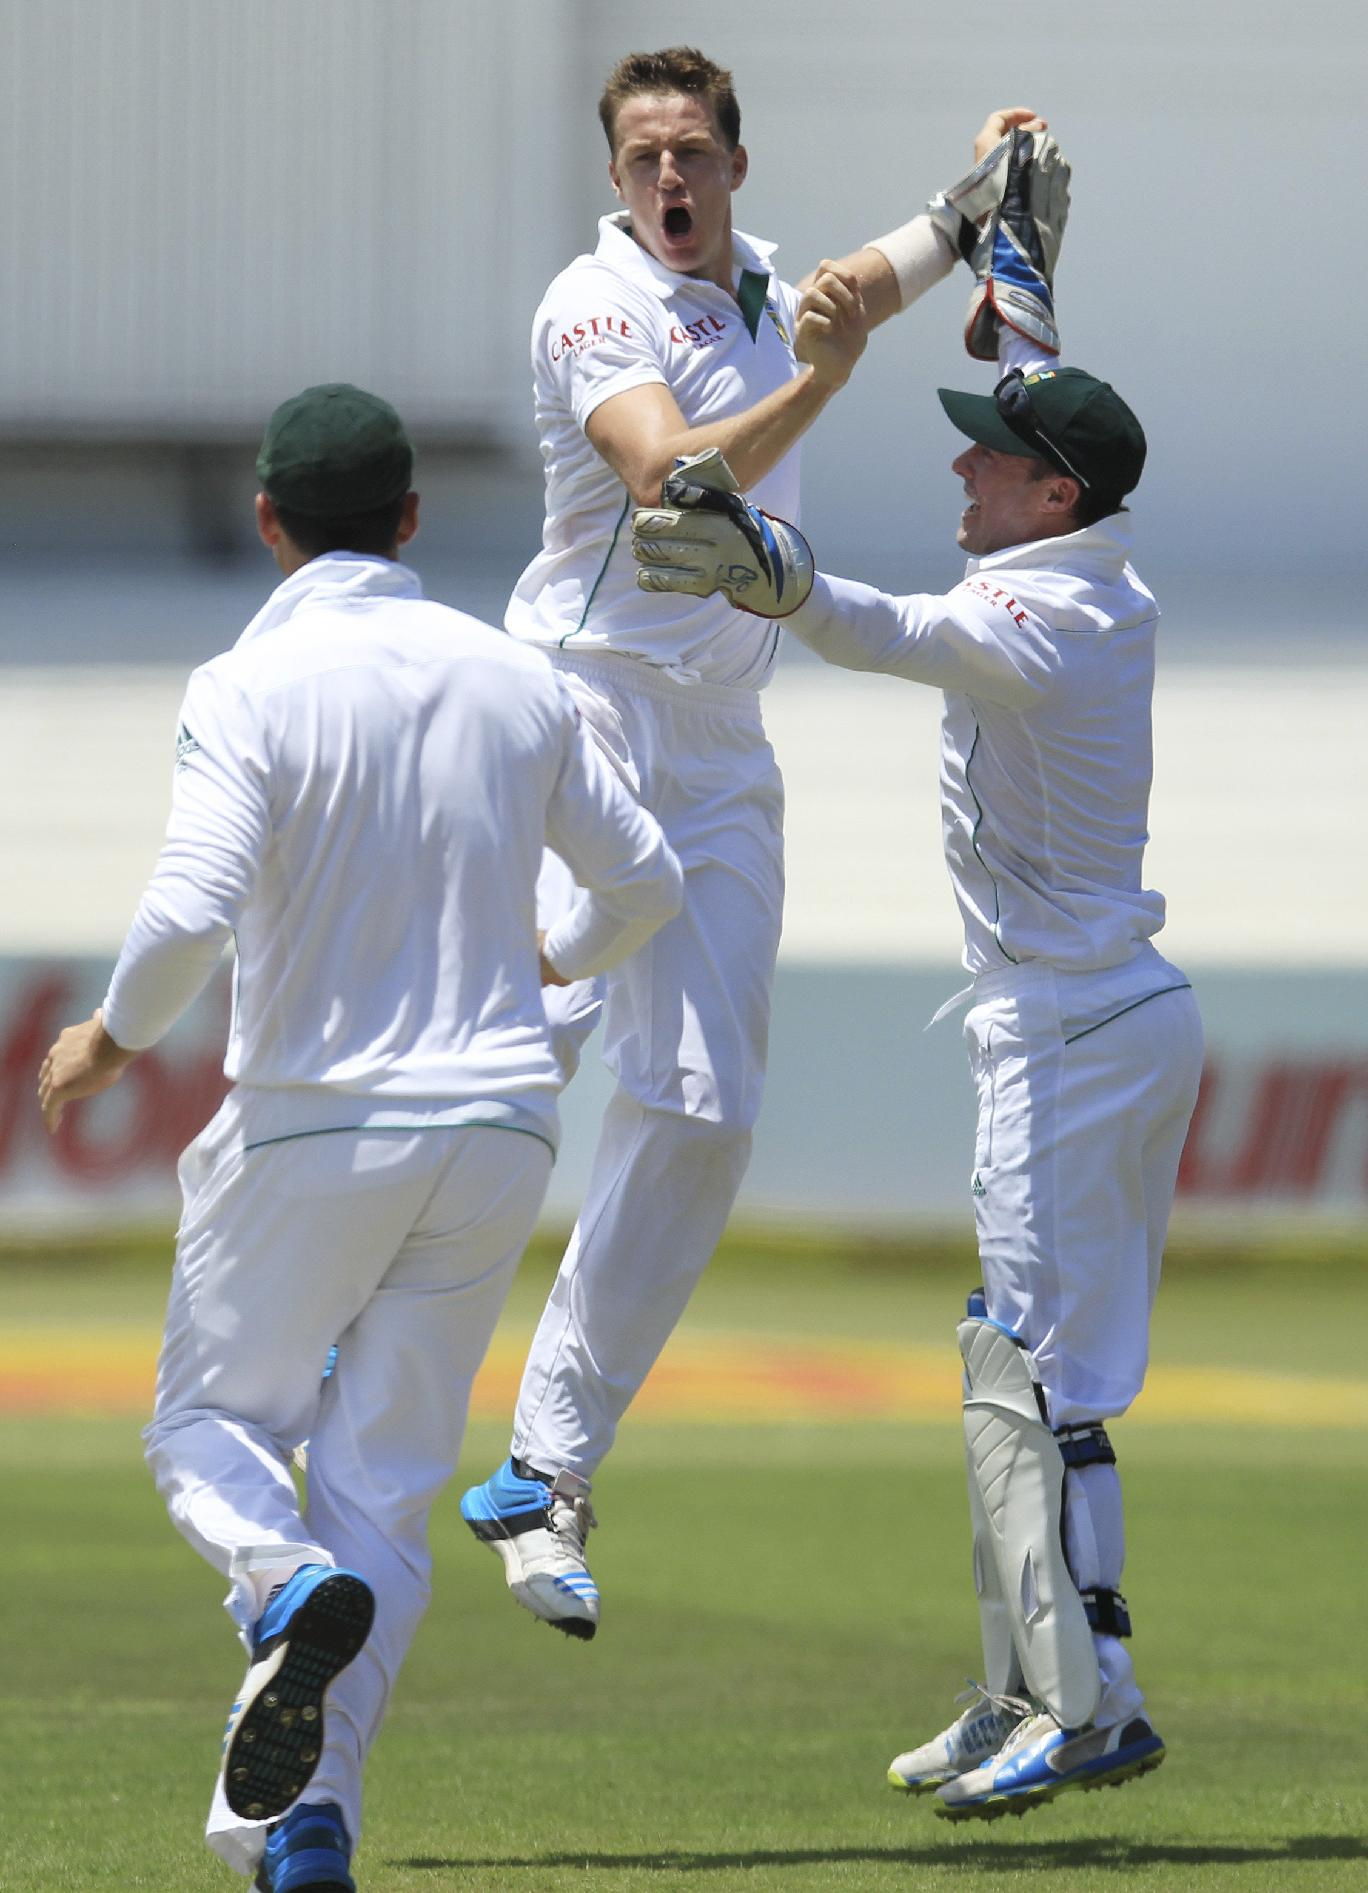 South Africa's bowler Morne Morkel, center, celebrates with teammates after dismissing India's batsman Shikhar Dhawan for 29 runs during first day of their cricket test match at Kingsmead stadium, Durban, South Africa, Thursday, Dec. 26, 2013